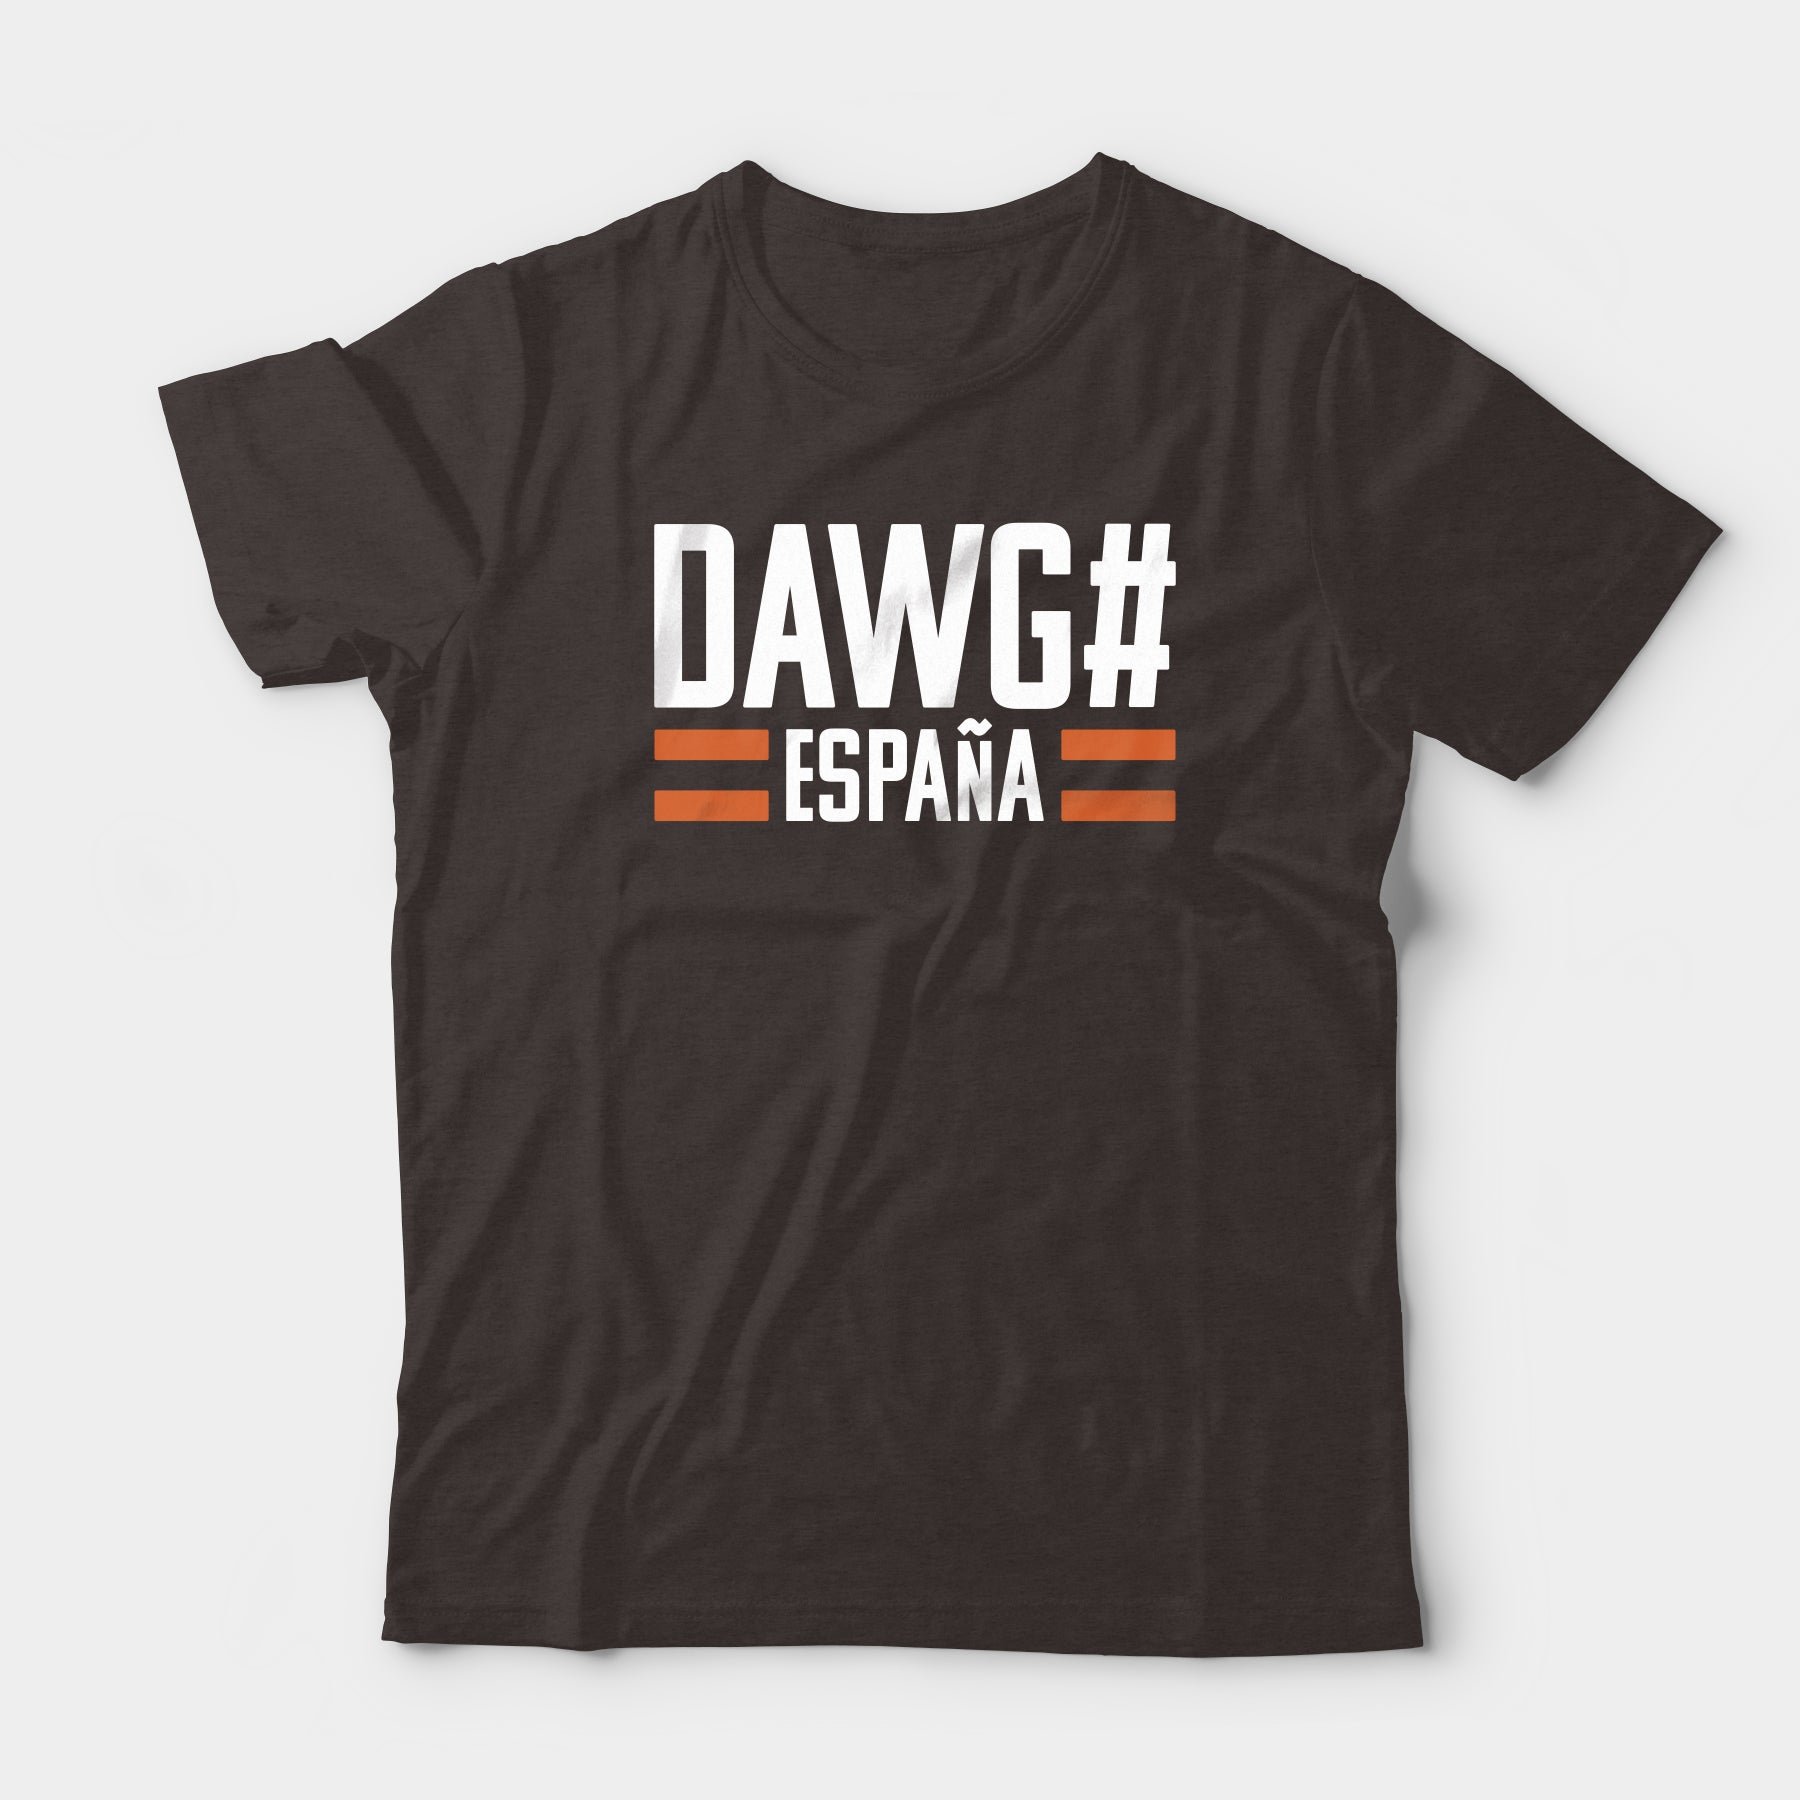 Dawg# España Tee, Brown